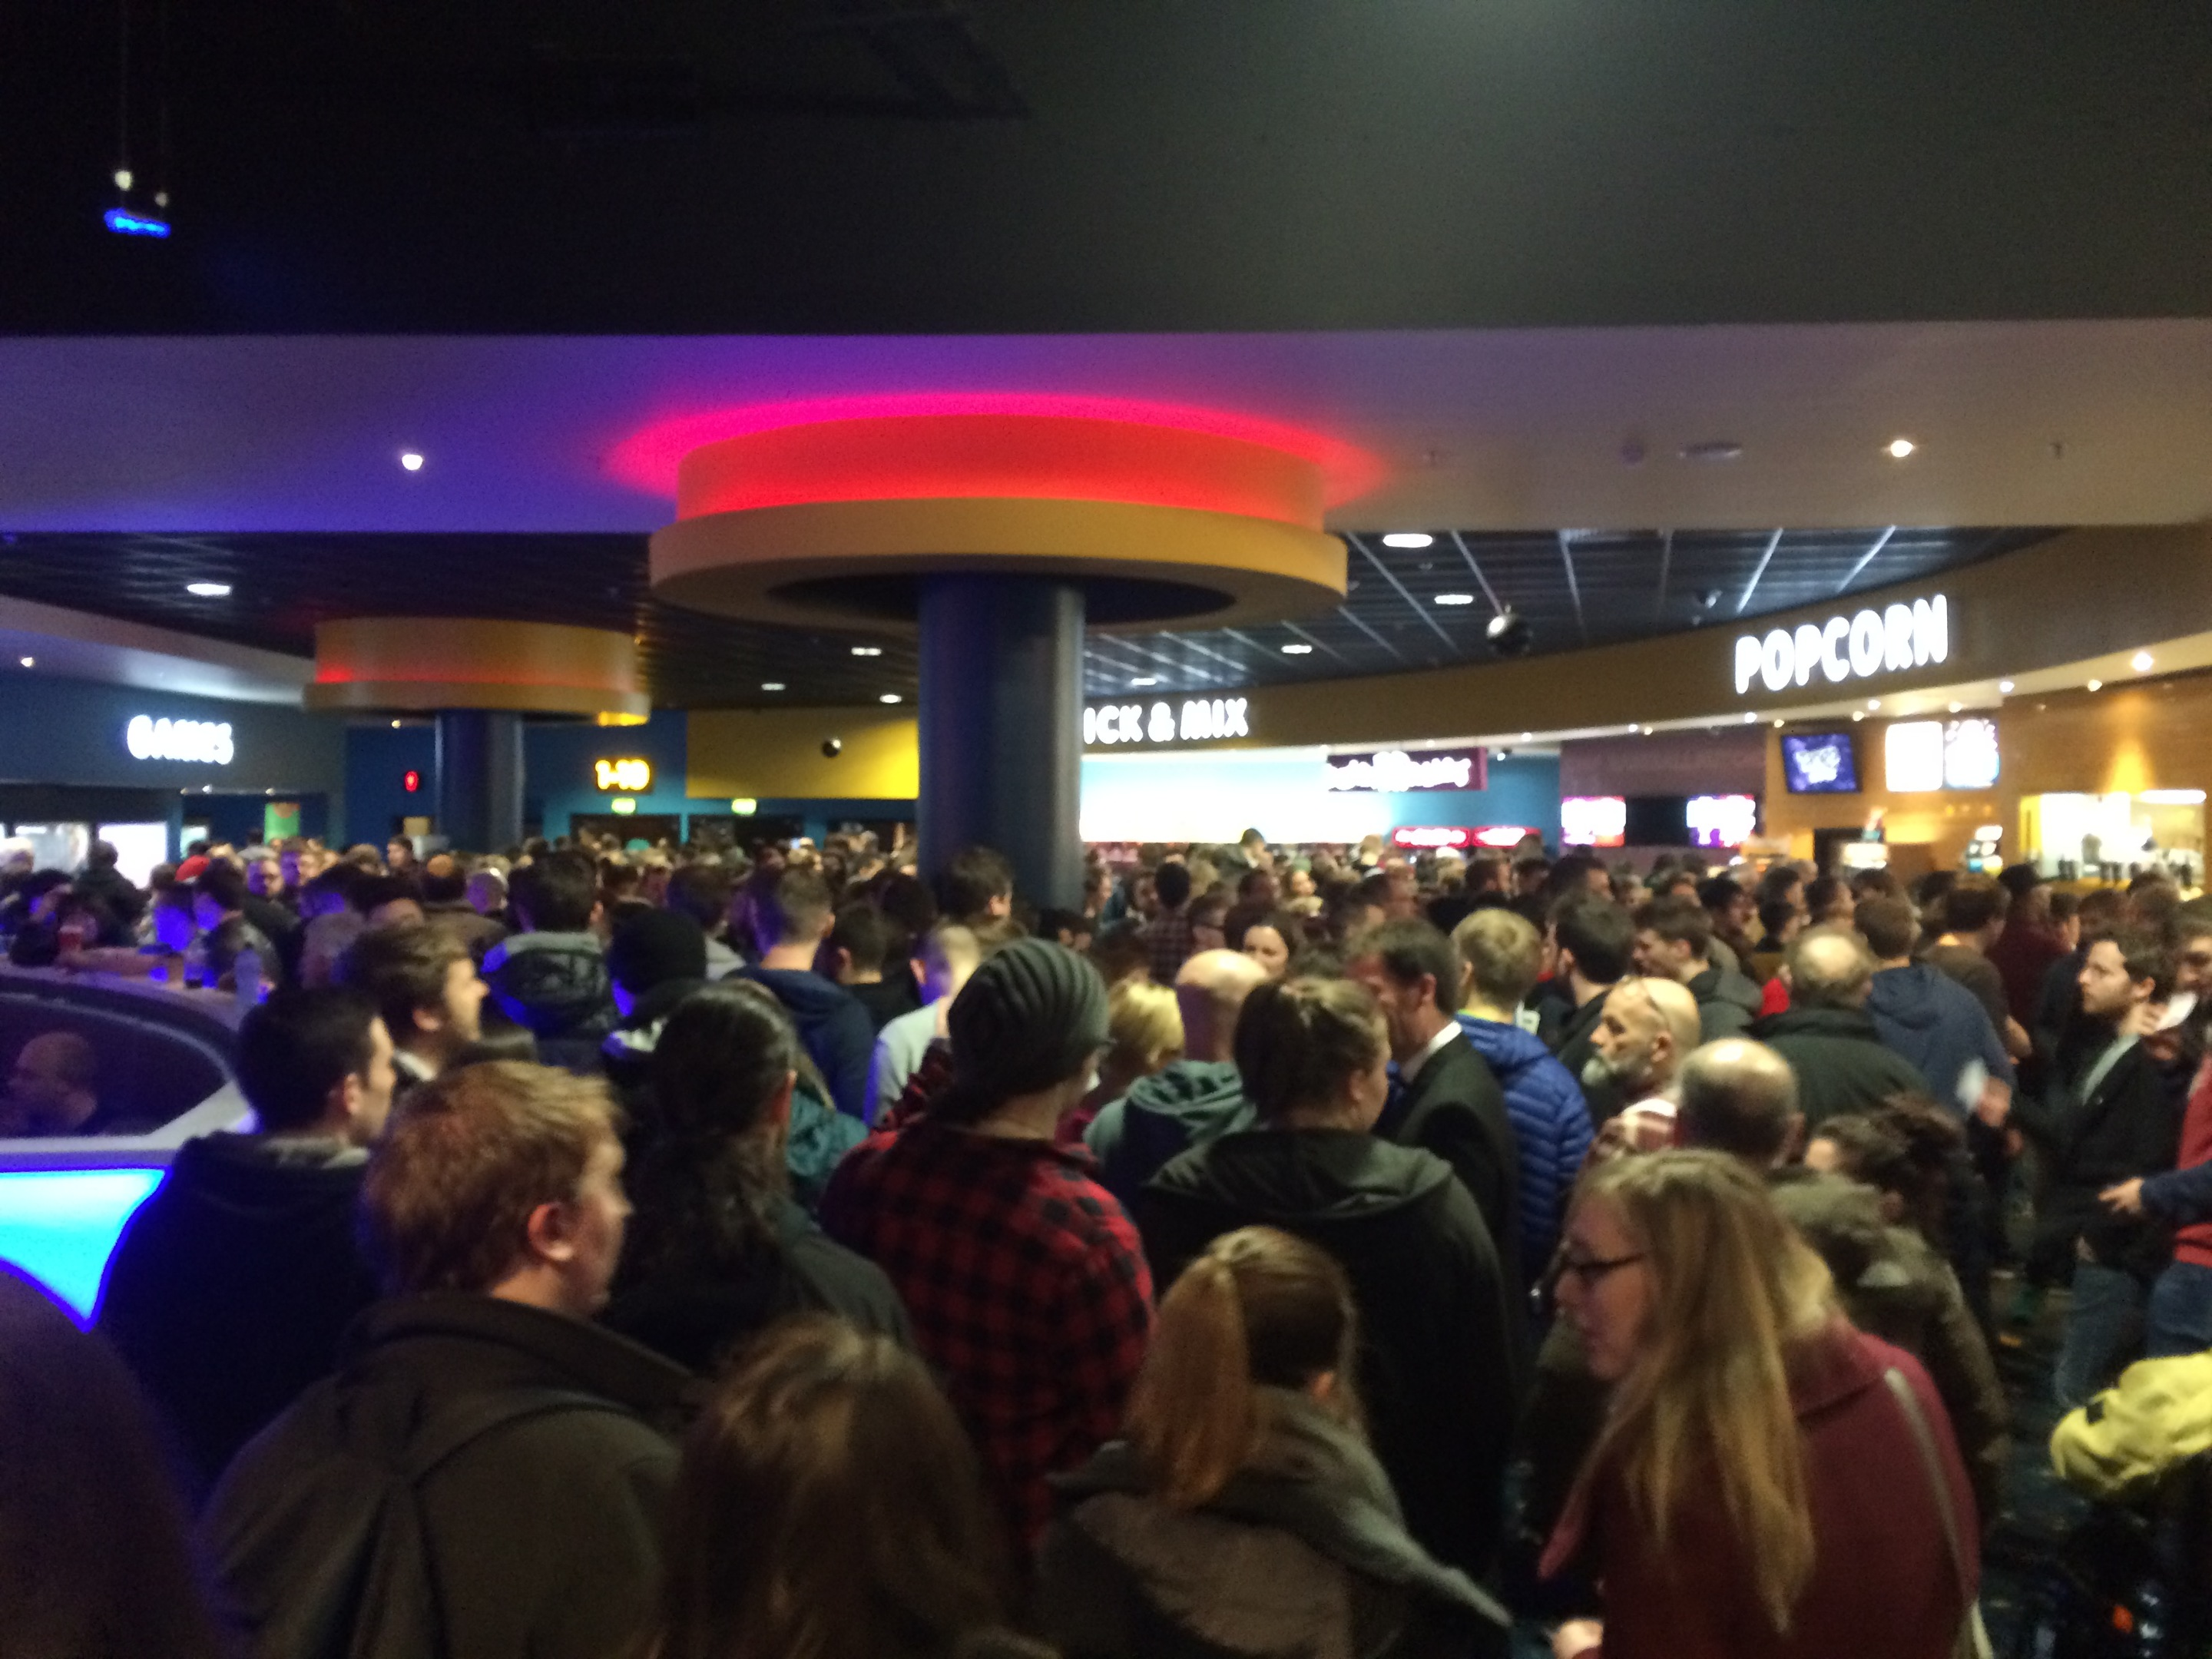 Midnight screenings of Star Wars: The Force Awakens in Aberdeen's Union Square